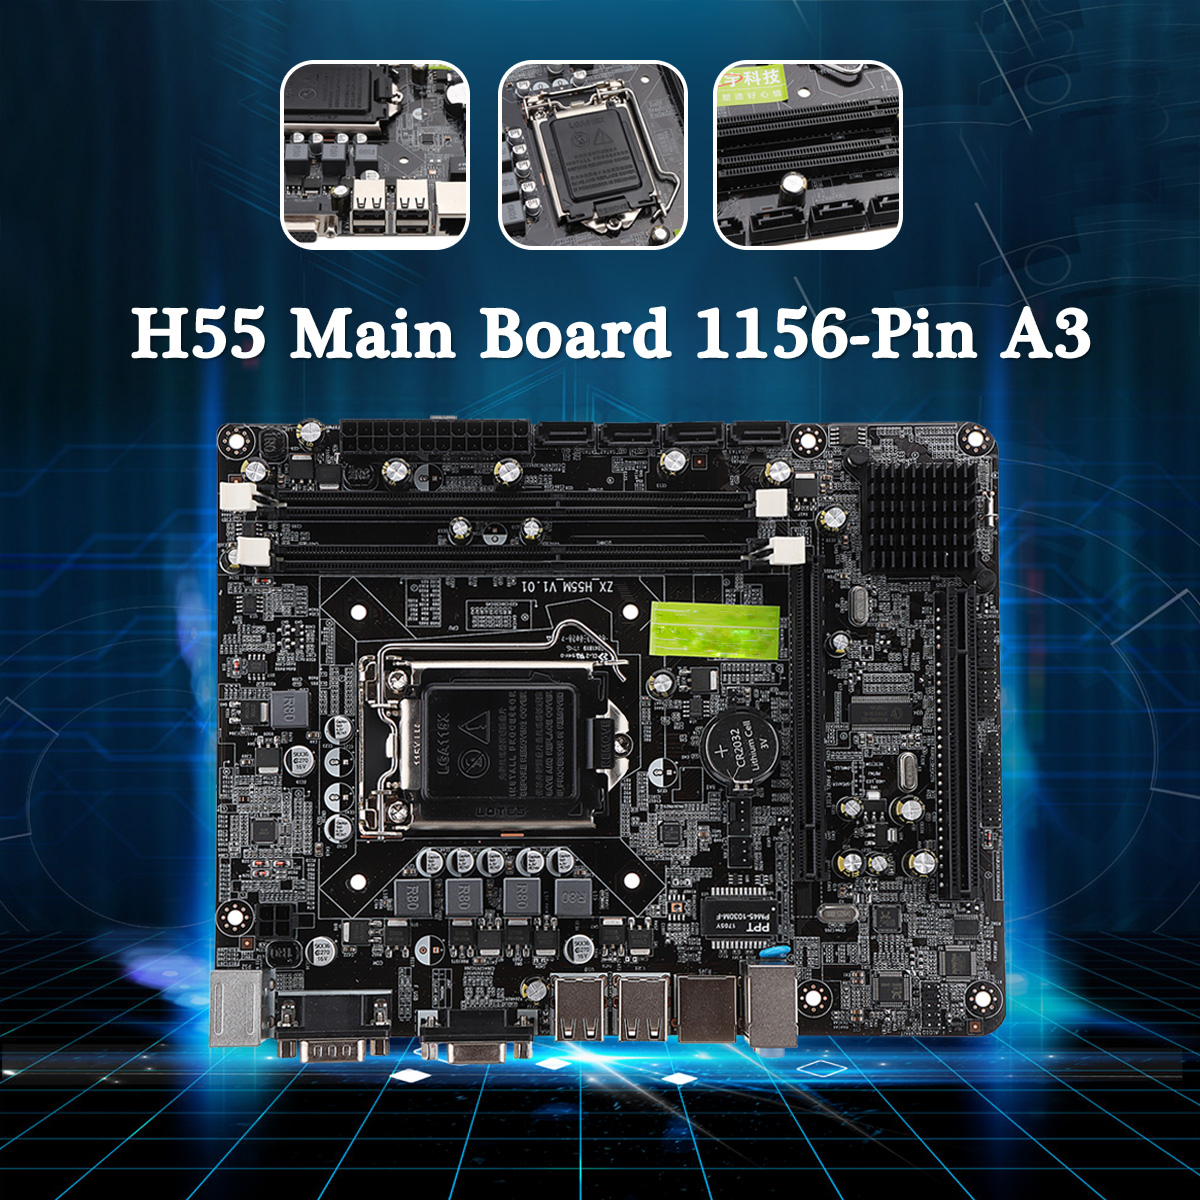 Computer Motherboard H55 Main Board 1156-pin A3 for Intel H55 LGA 1156 CPU